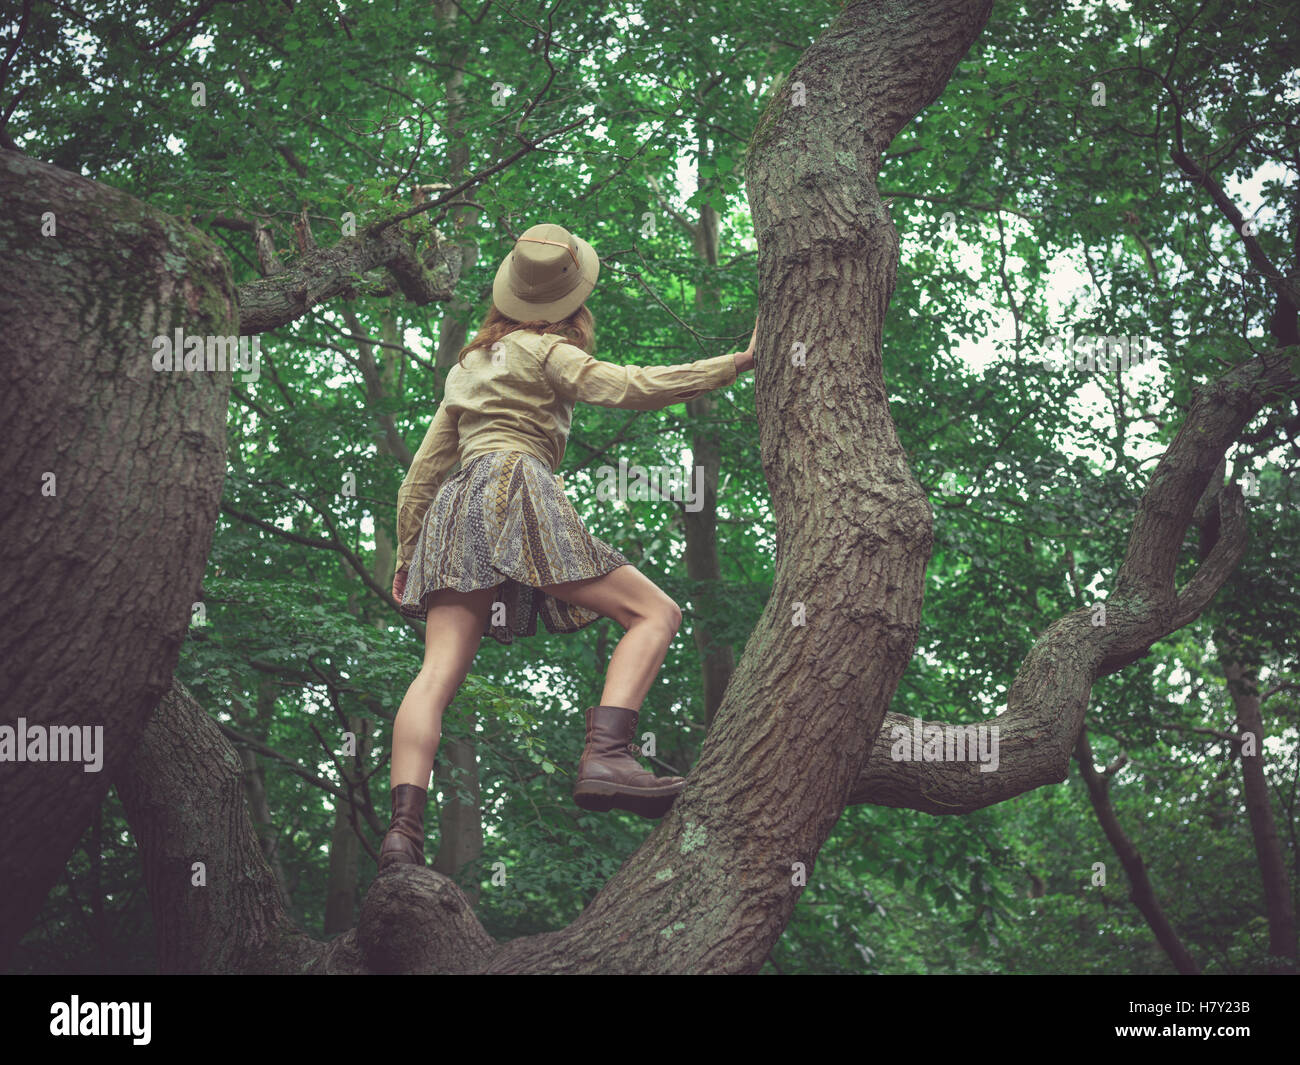 A young woman wearing a safari hat is climbing a tree in the forest - Stock Image